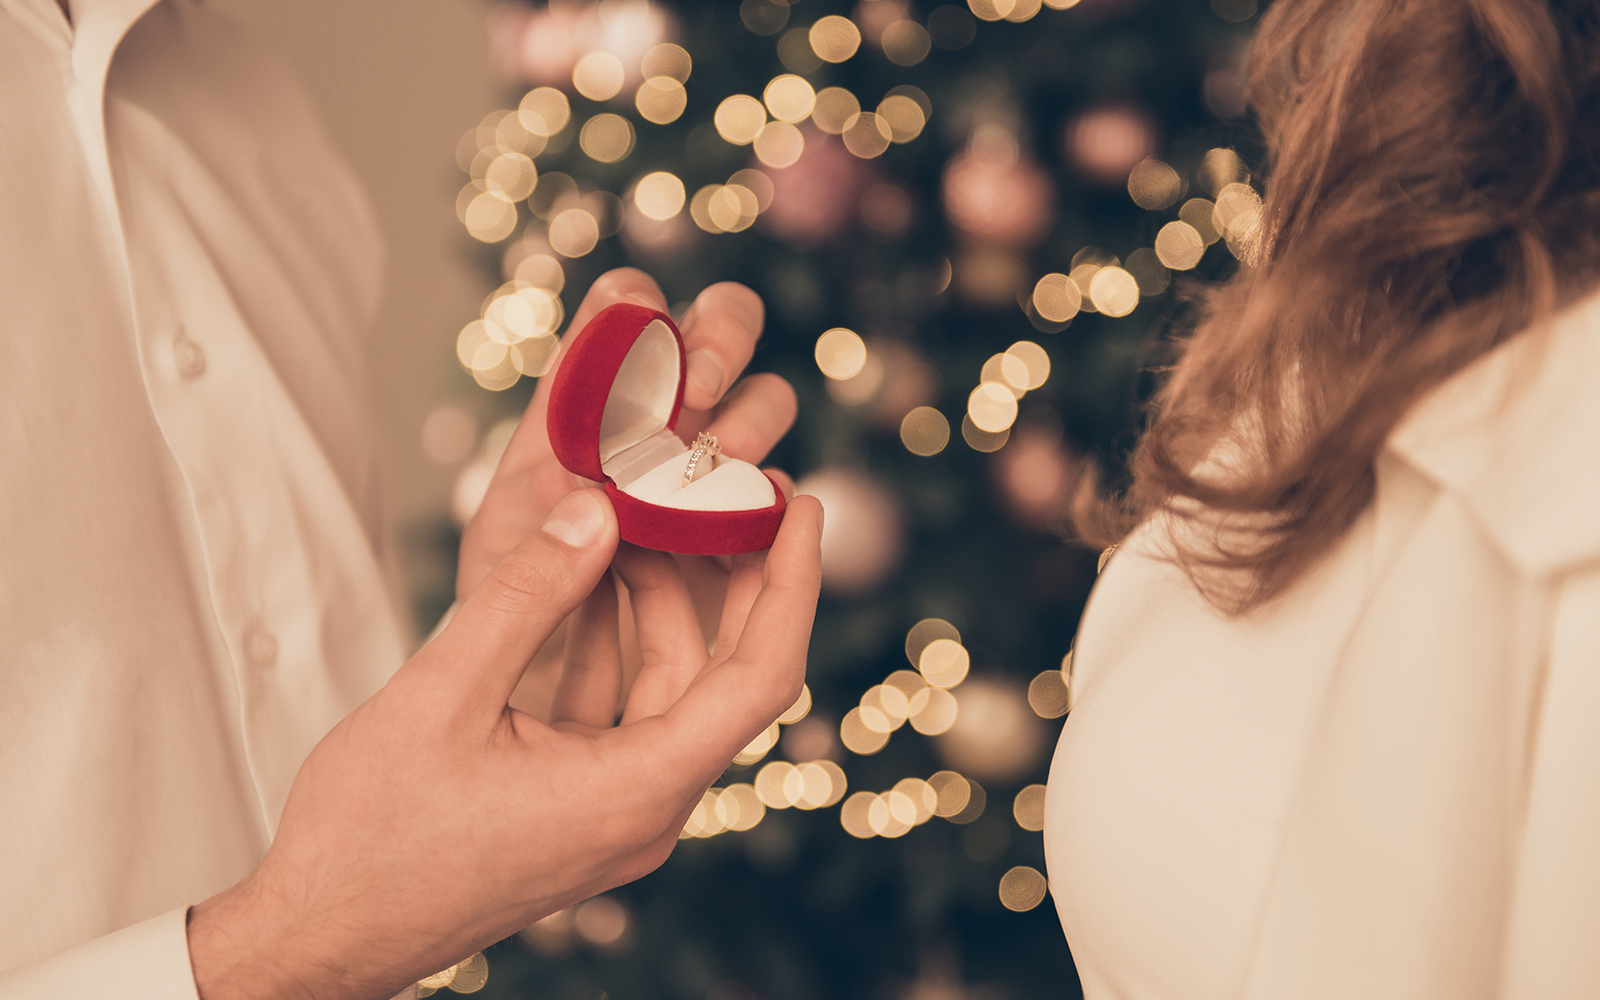 man proposing to woman with engagement ring